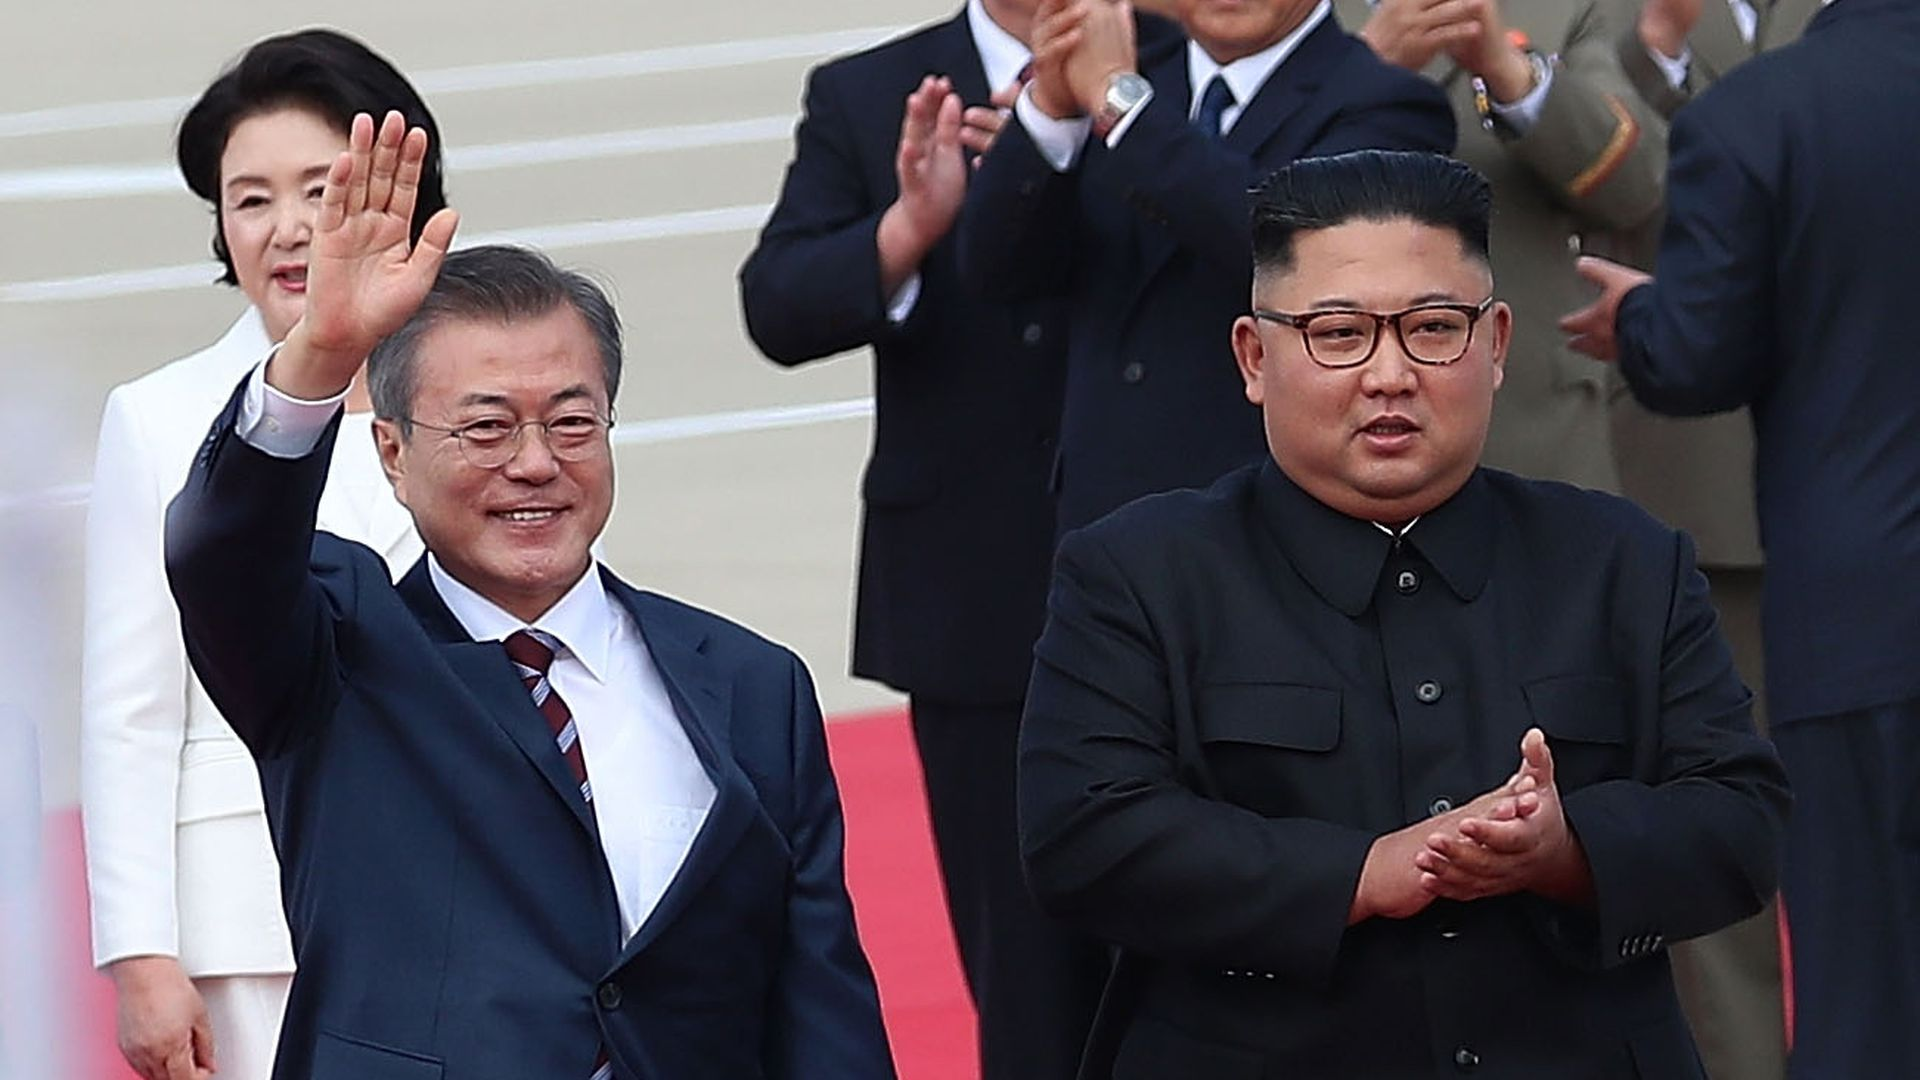 North Korean Leader Kim Jong Un meets with South Korean President Moon Jae-in for the Inter-Korean Summit at Pyongyang Sunan International Airport on September 18, 2018.